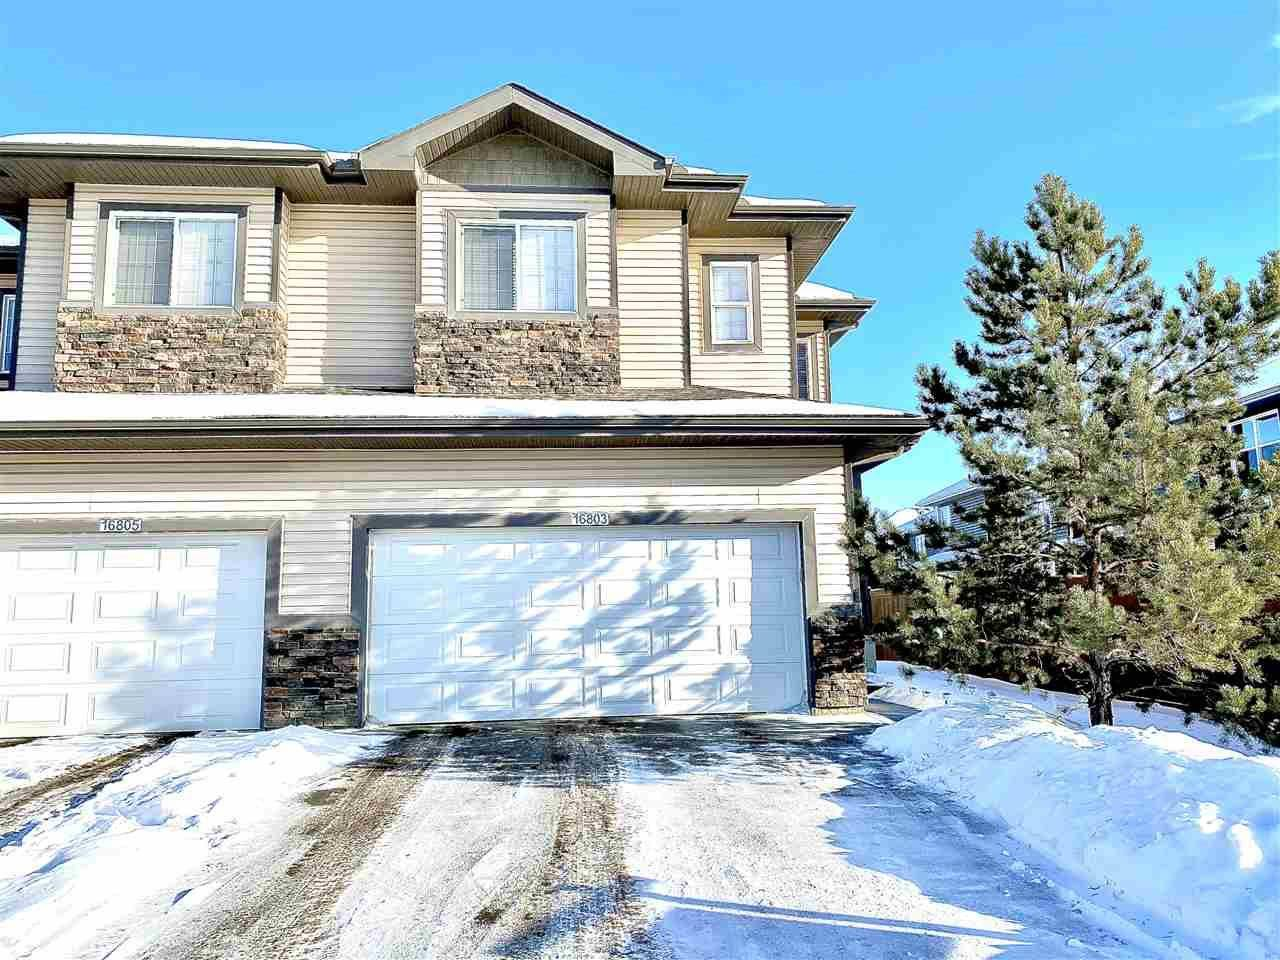 Townhouse for sale at 16803 55 St Nw Edmonton Alberta - MLS: E4178904